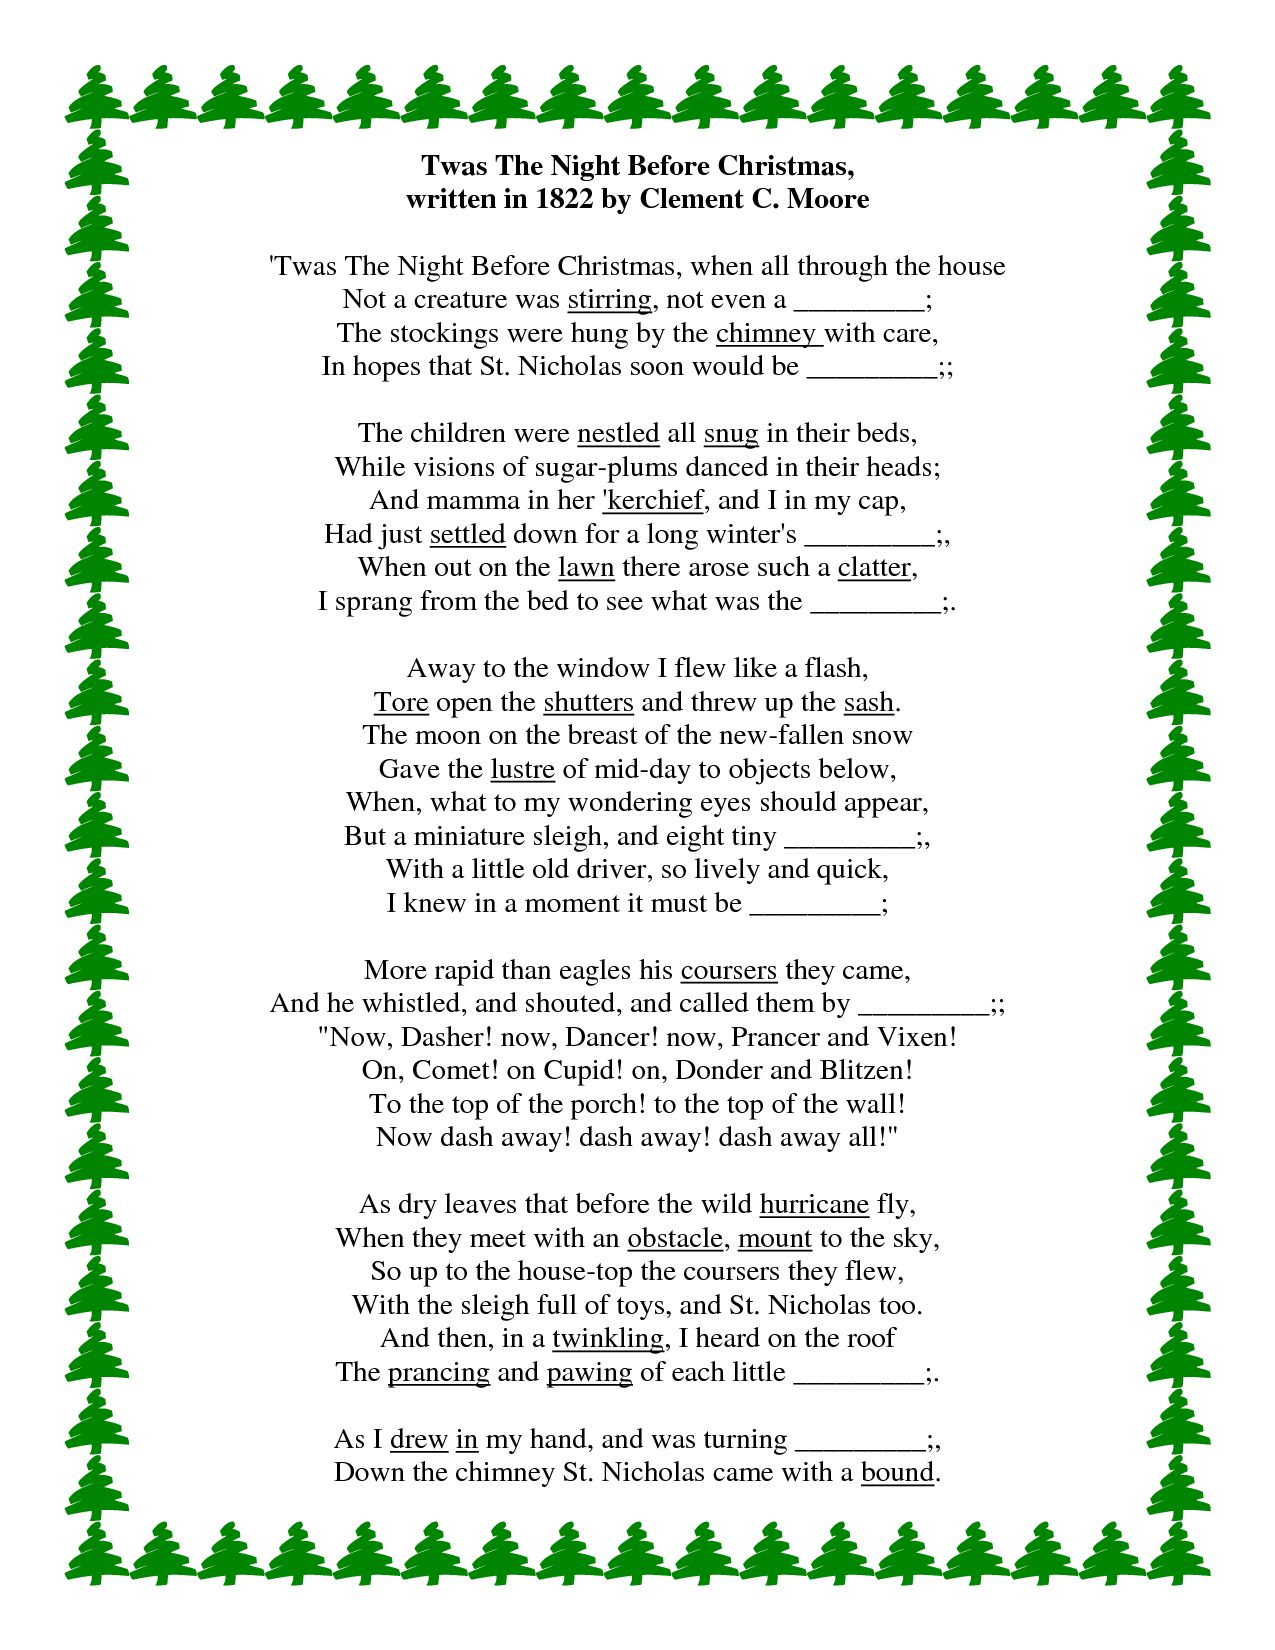 The Words To Twas A Night Before Christmas - Google Search